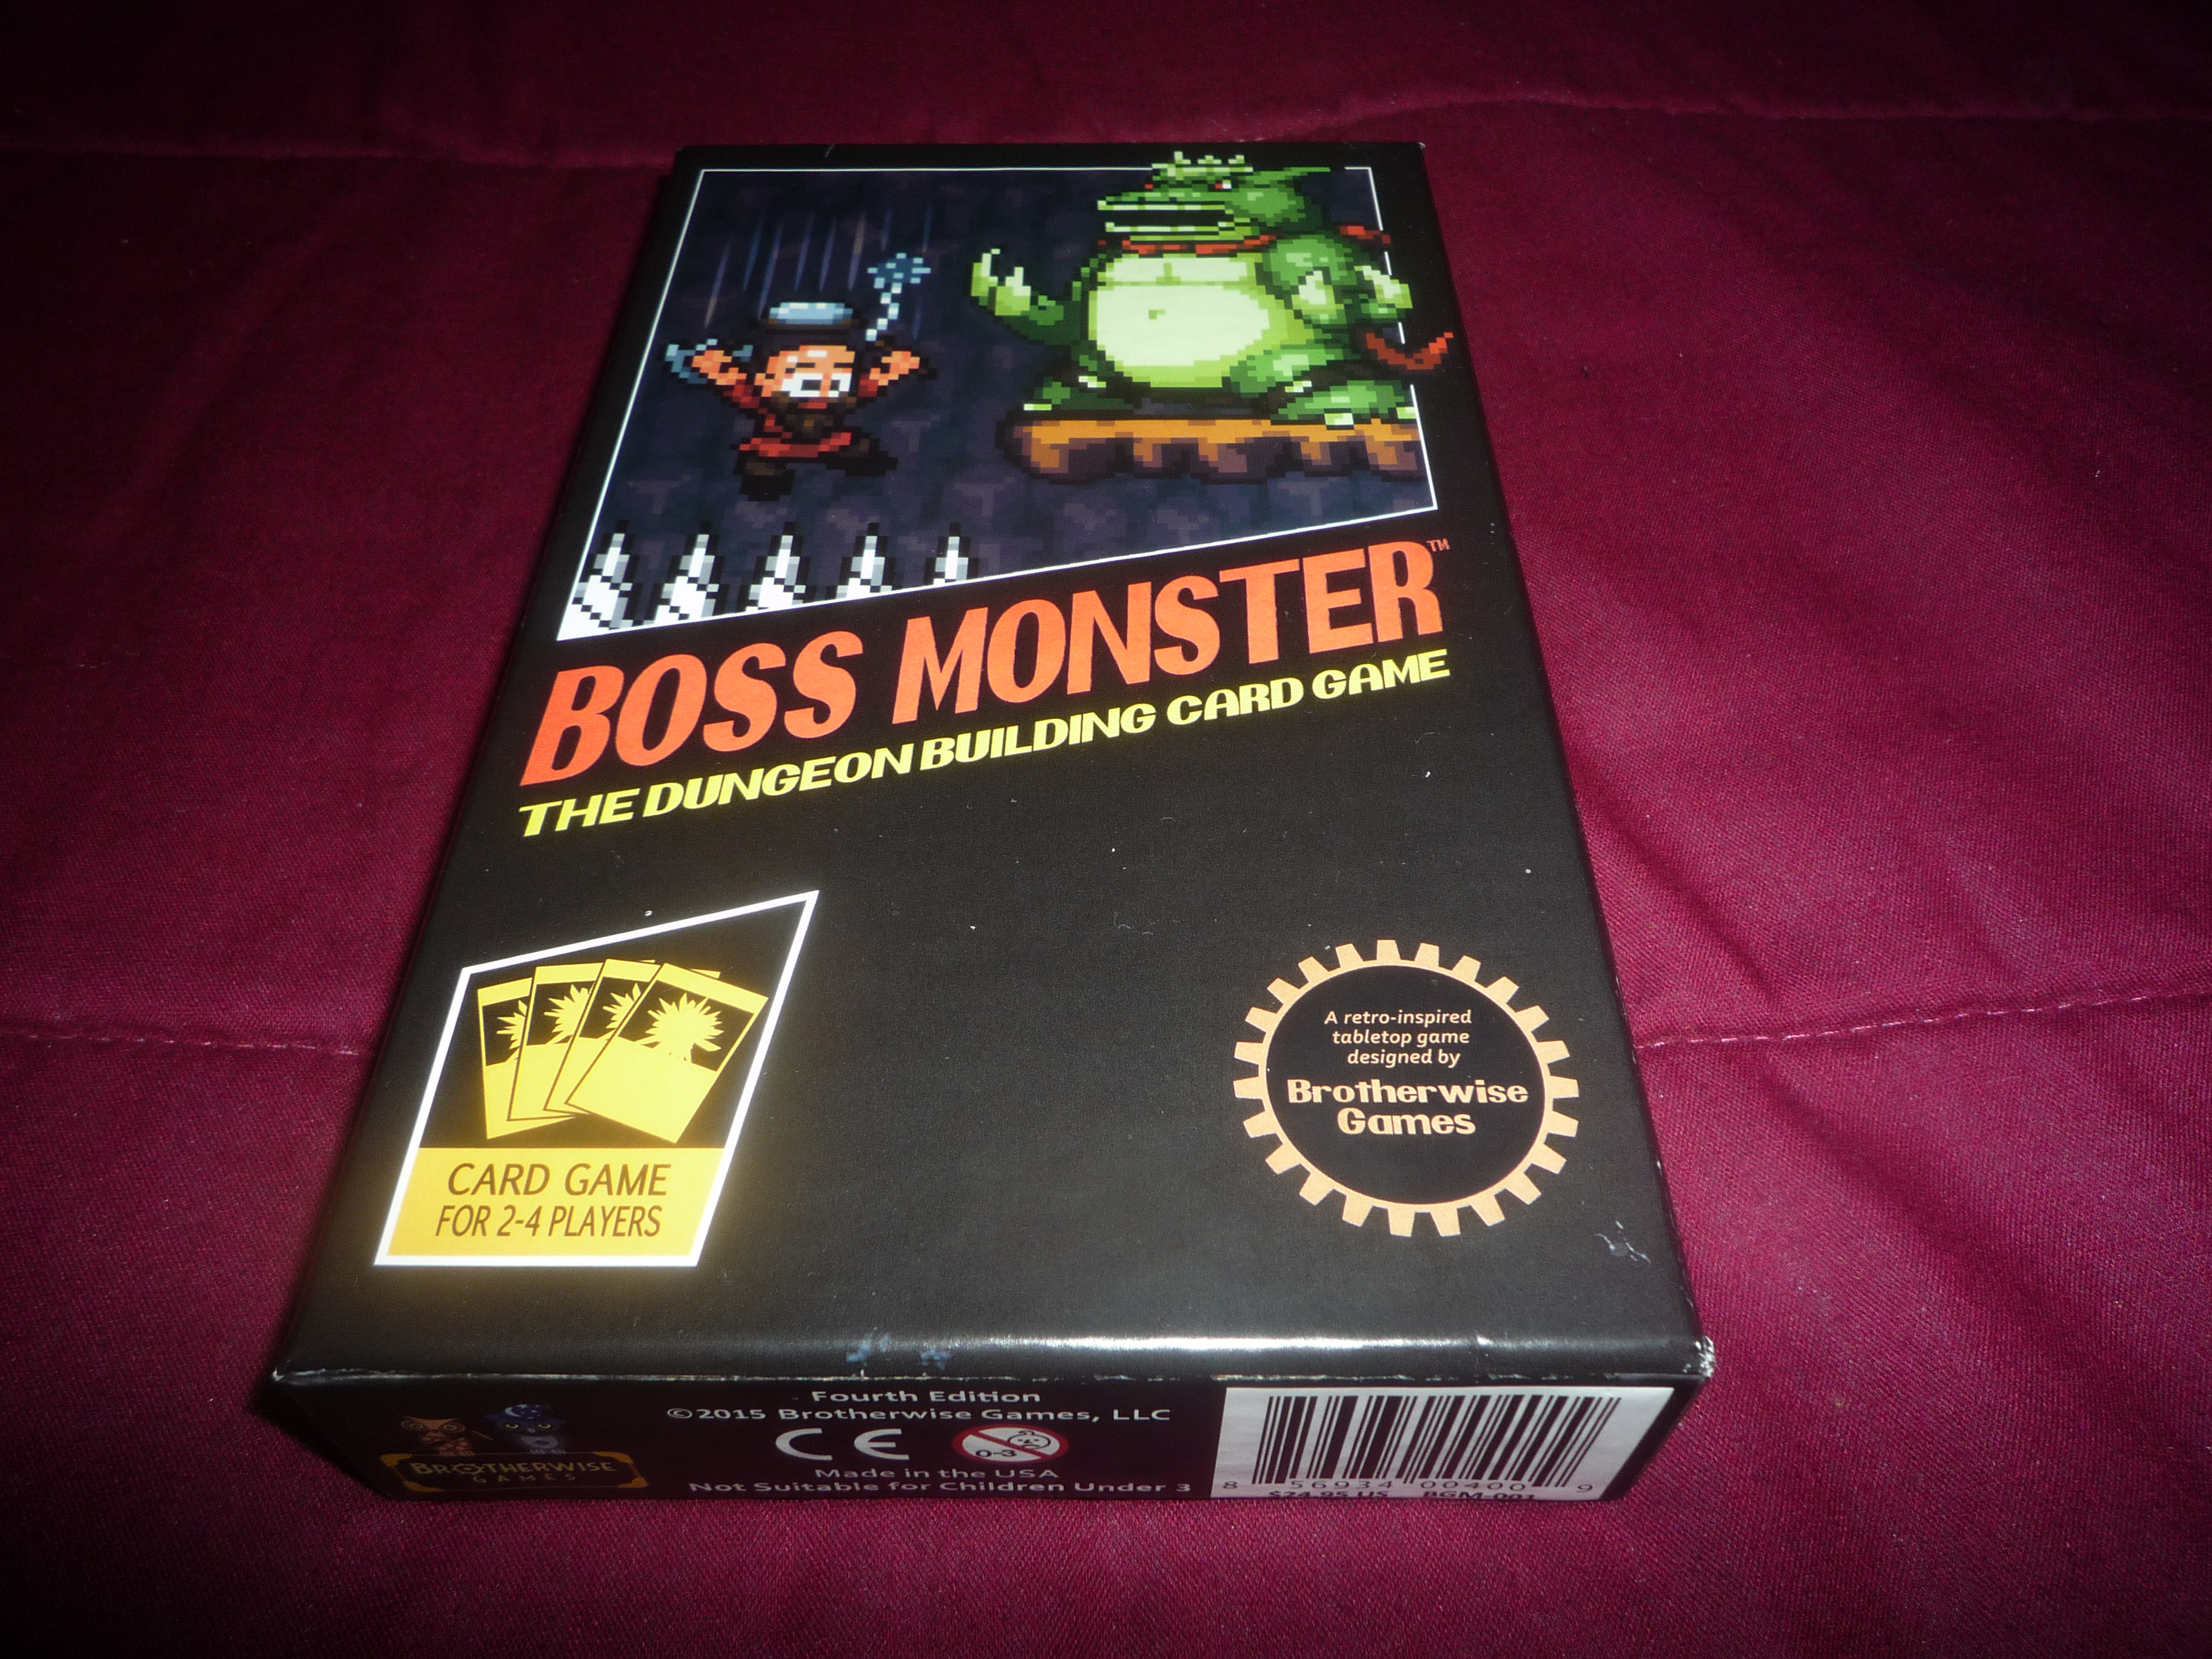 Boss Monster Card Game Review | DDO Players